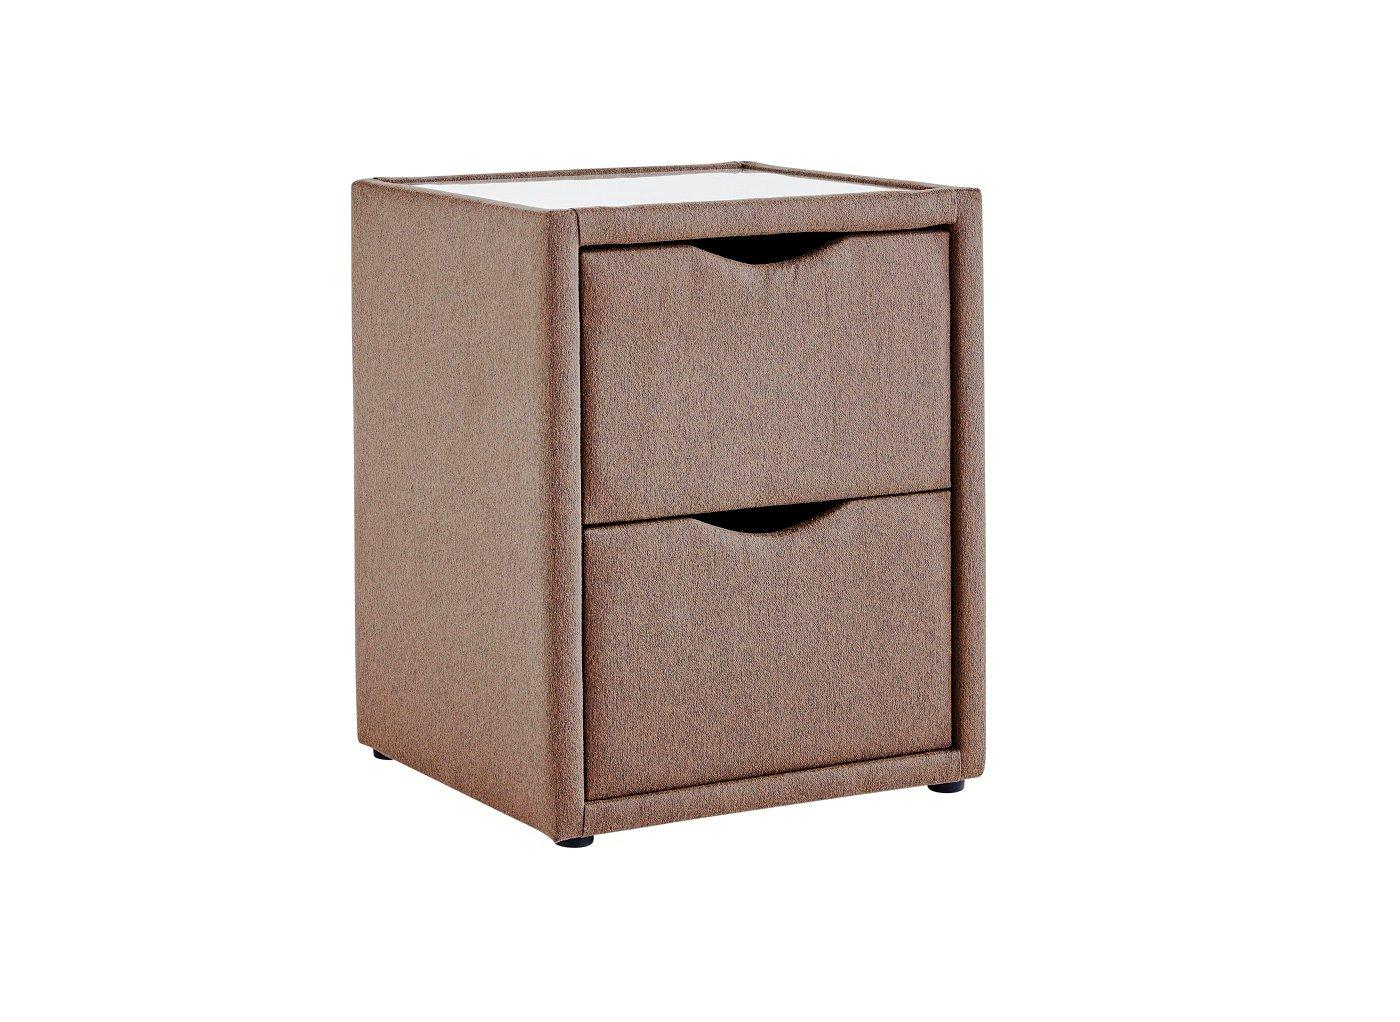 Luxury 2 Drawer Bedside Table – Mocha (£99)